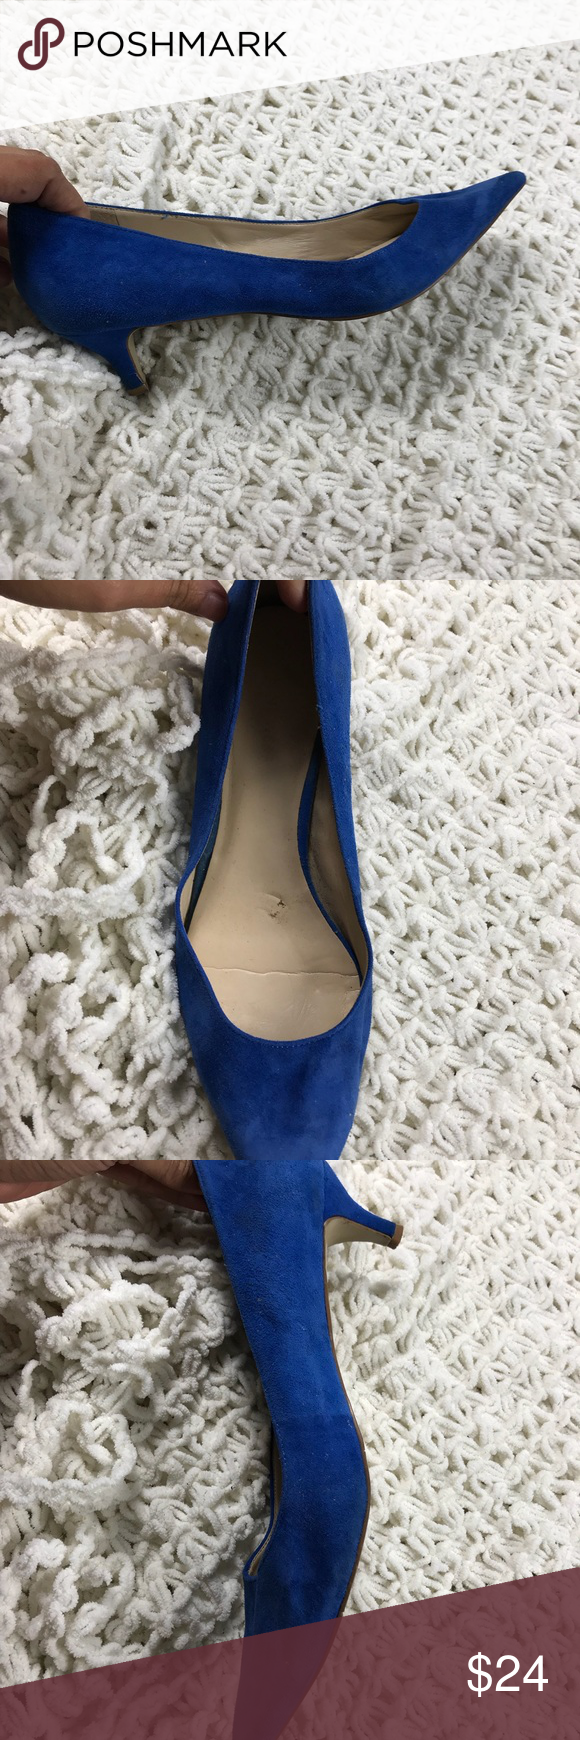 24ed45a0912 Nine West royal blue suede pointy heels 9.5 M Excellent condition Nine West  Shoes